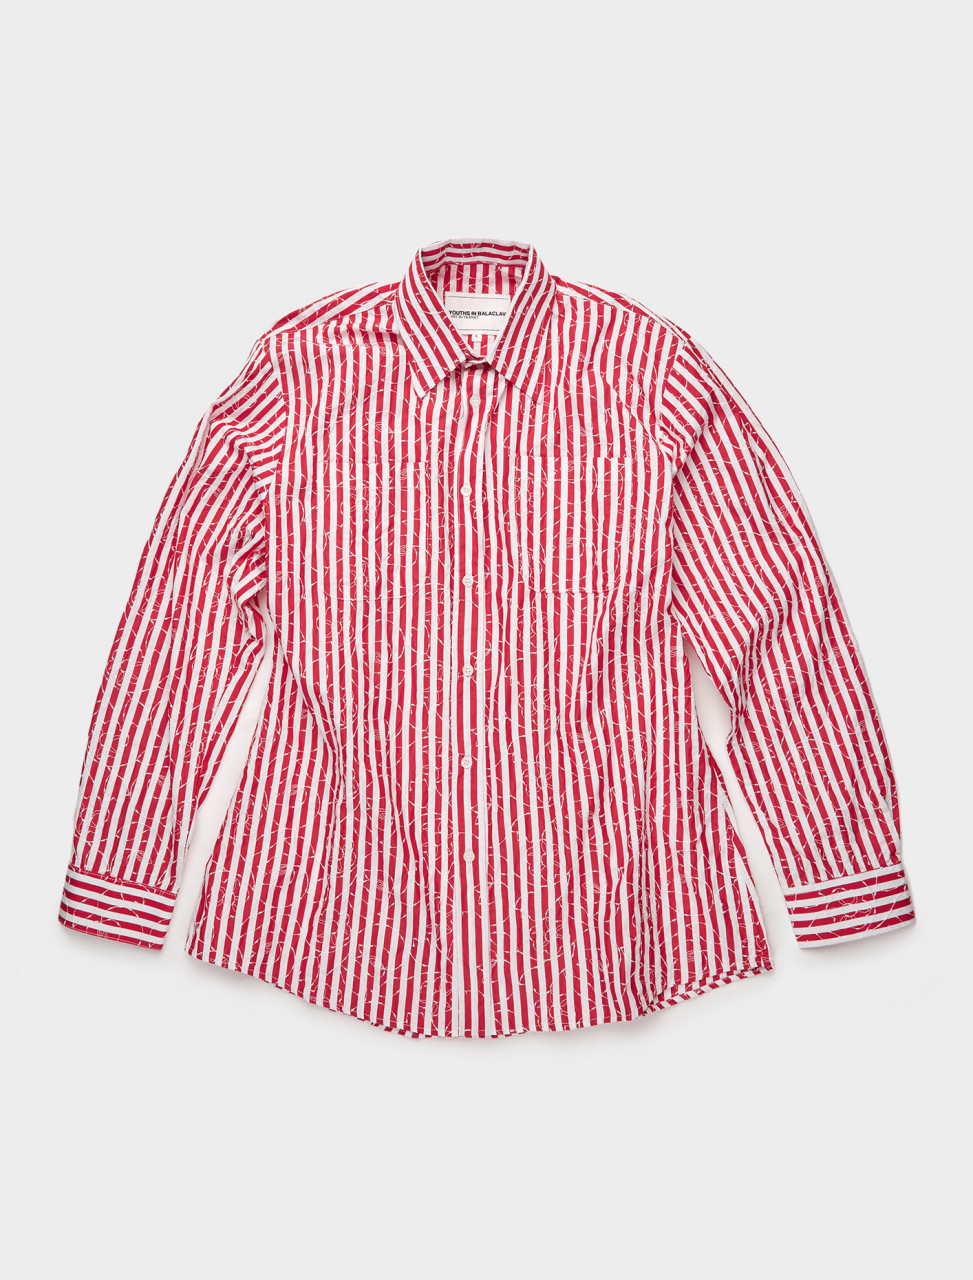 328-YOU01B001-1 YOUTHS IN BALACLAVA FLOWER STRIPE SHIRT IN RED